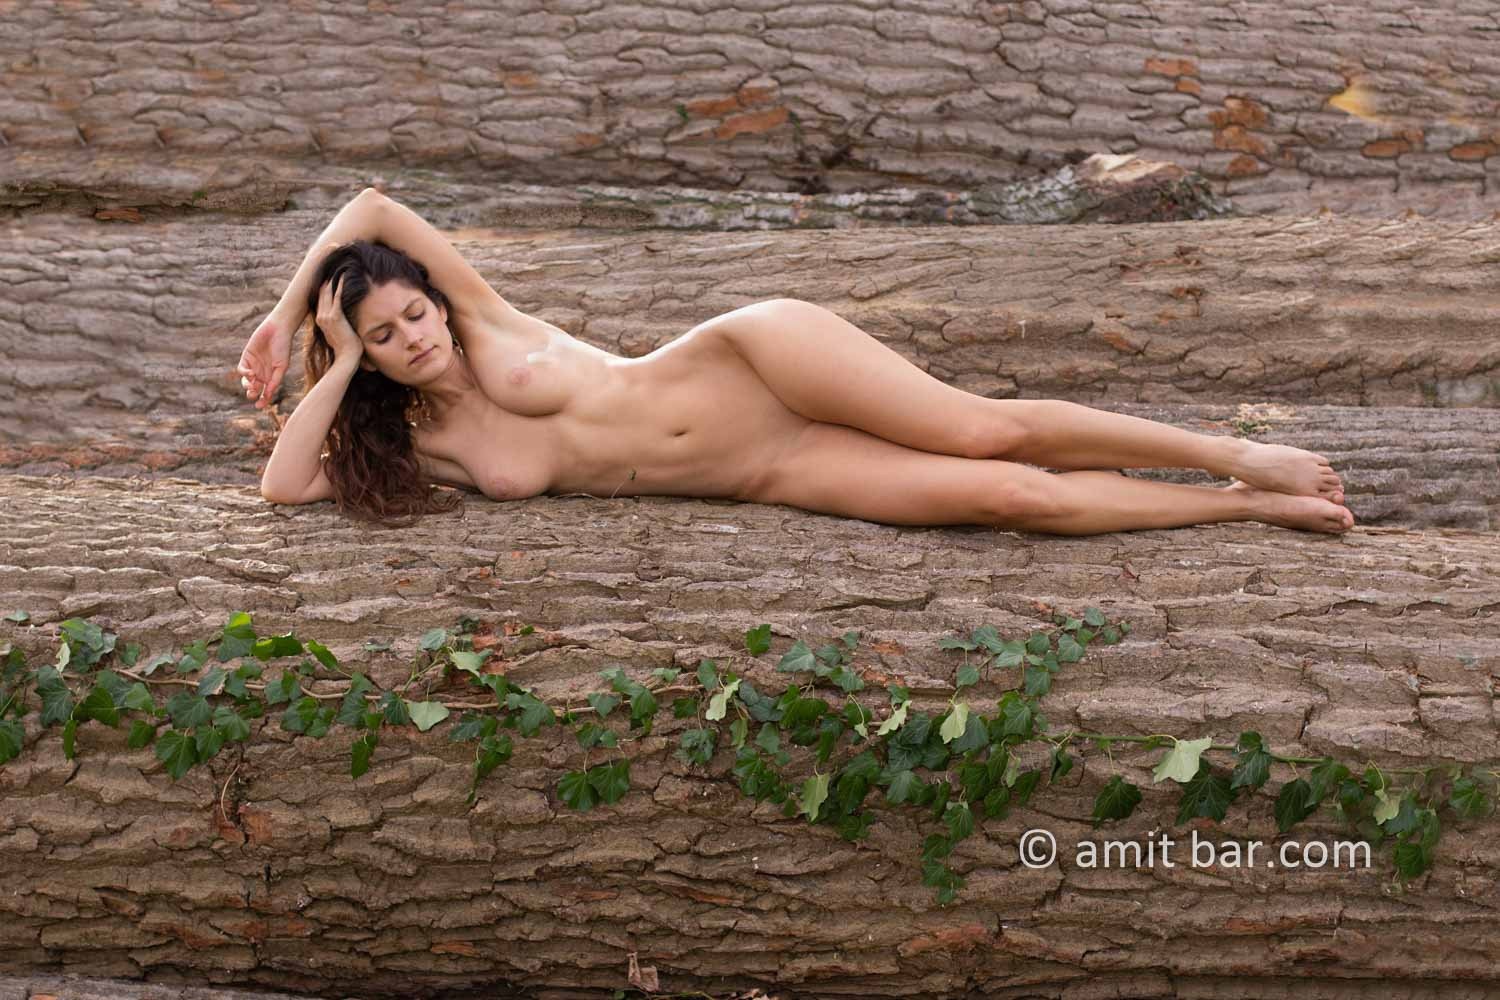 Populus logs I:: Elle is laying on populus logs